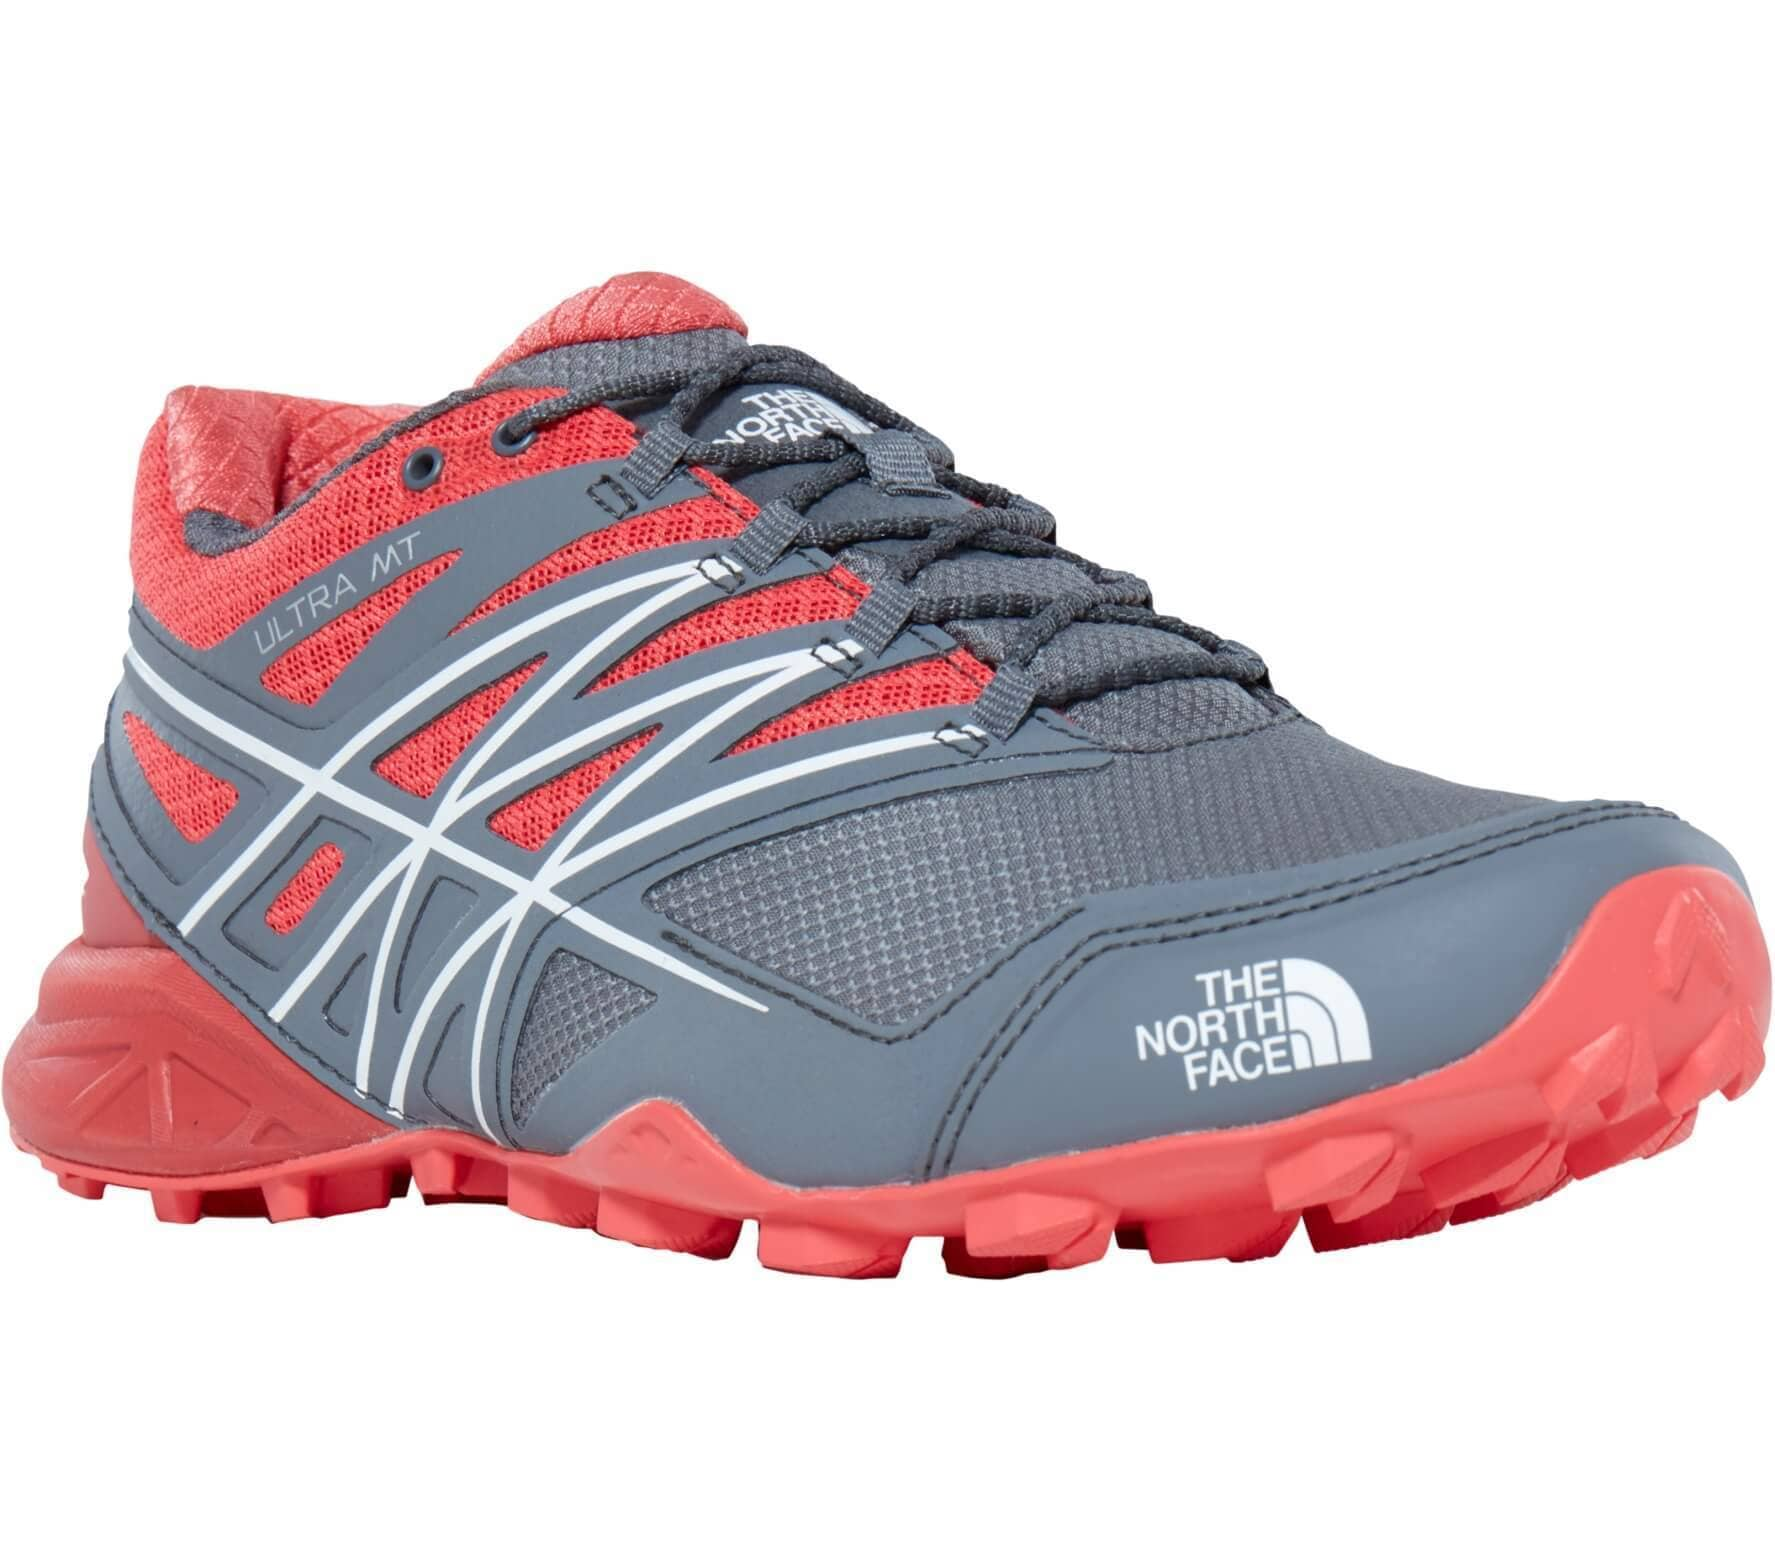 b57cc4d0a The North Face - Ultra MT GTX women's trail running shoes (grey/pink)